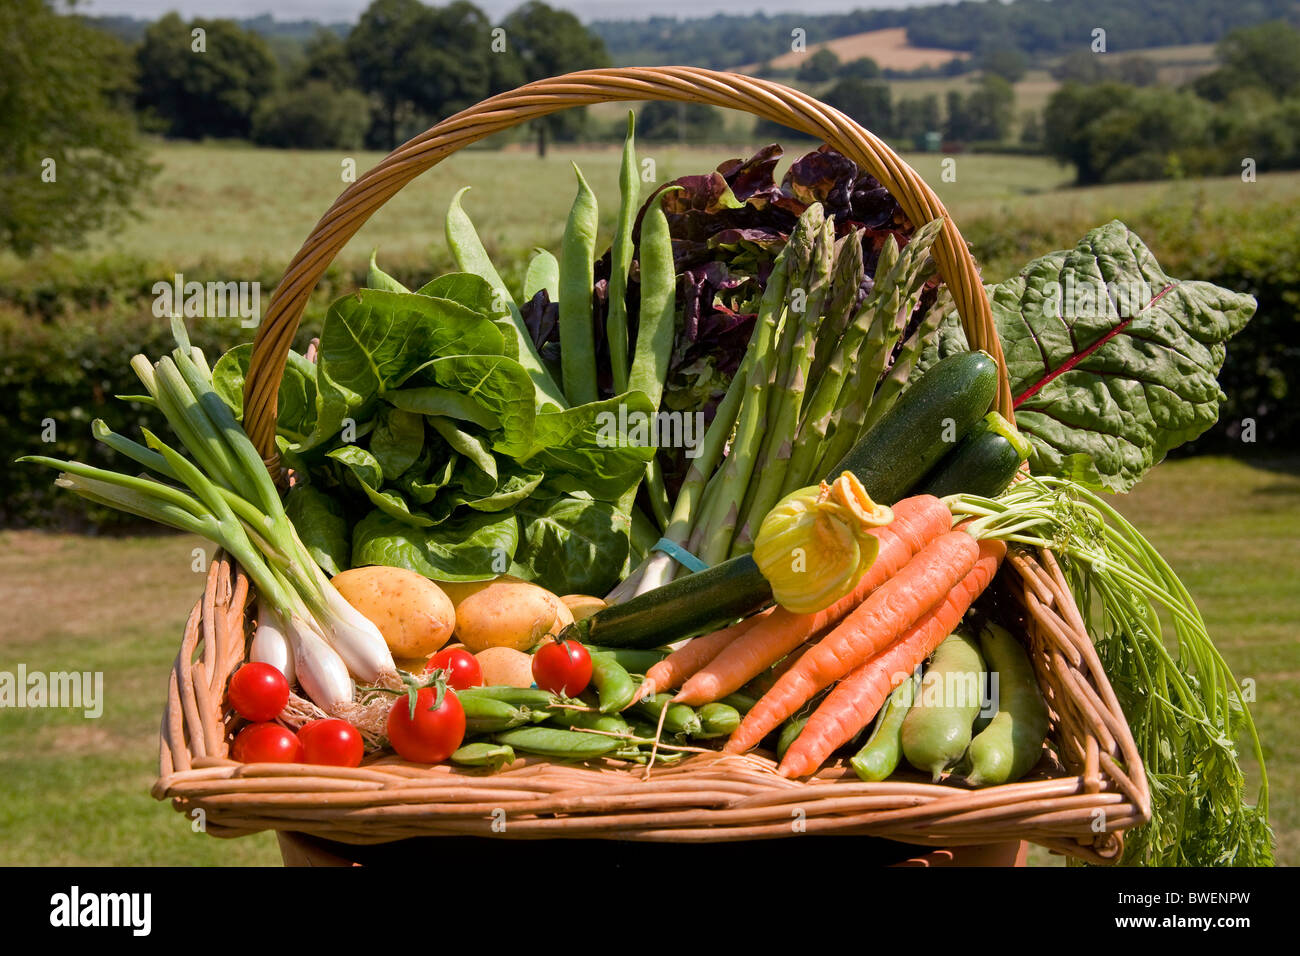 Colourful trug of locally grown British summer vegetables in countryside landscape fields woods valley in the Weald - Stock Image